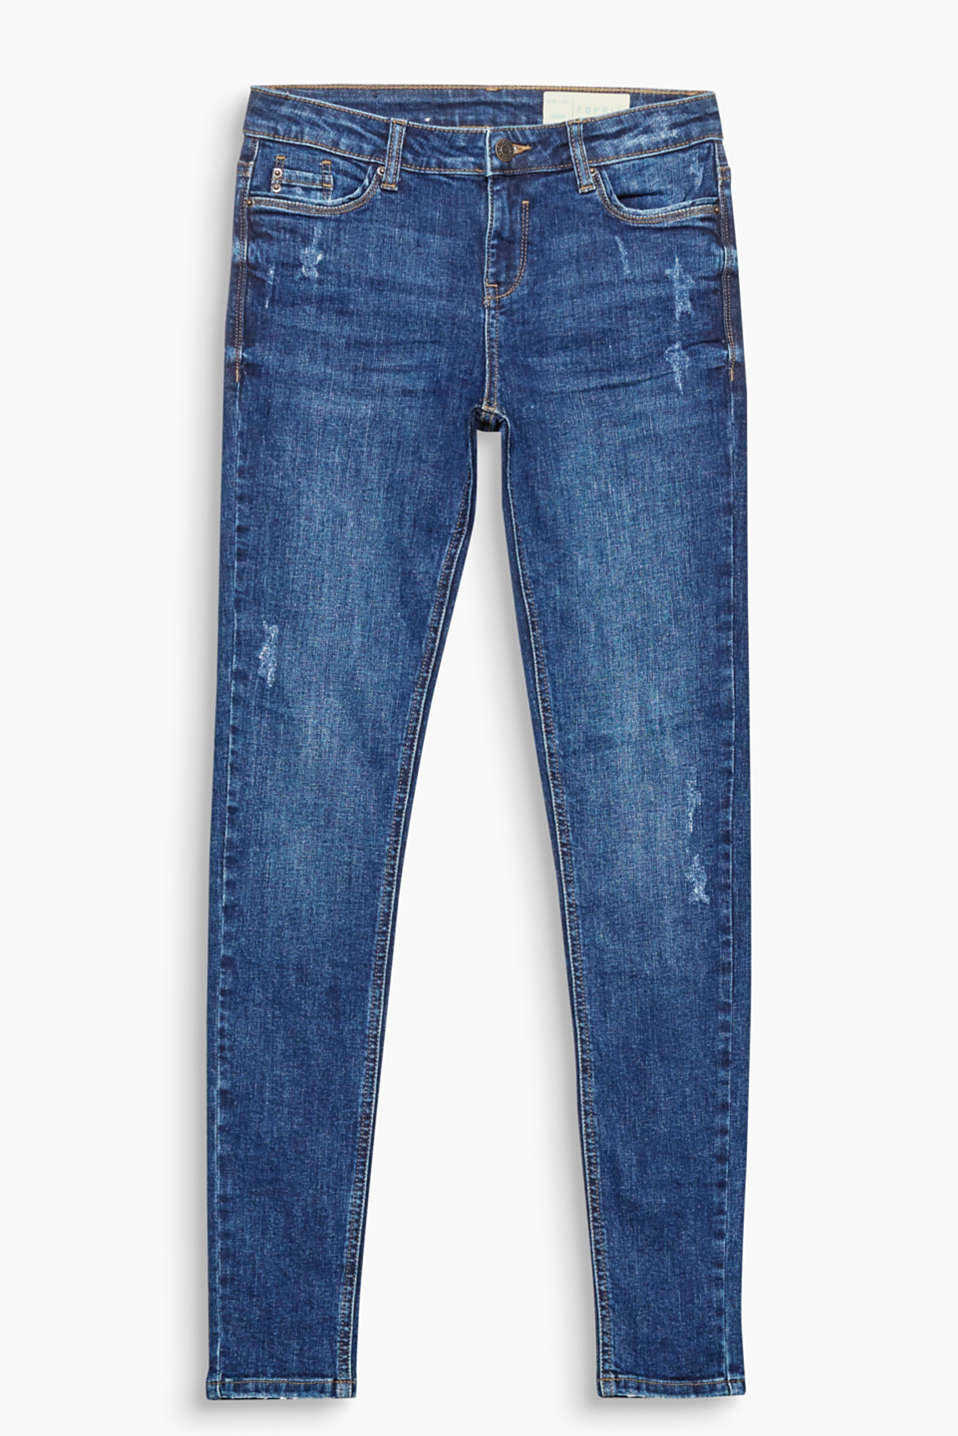 Feel good in these skin-tight stretch jeans made of organic cotton with a casual vintage finish!